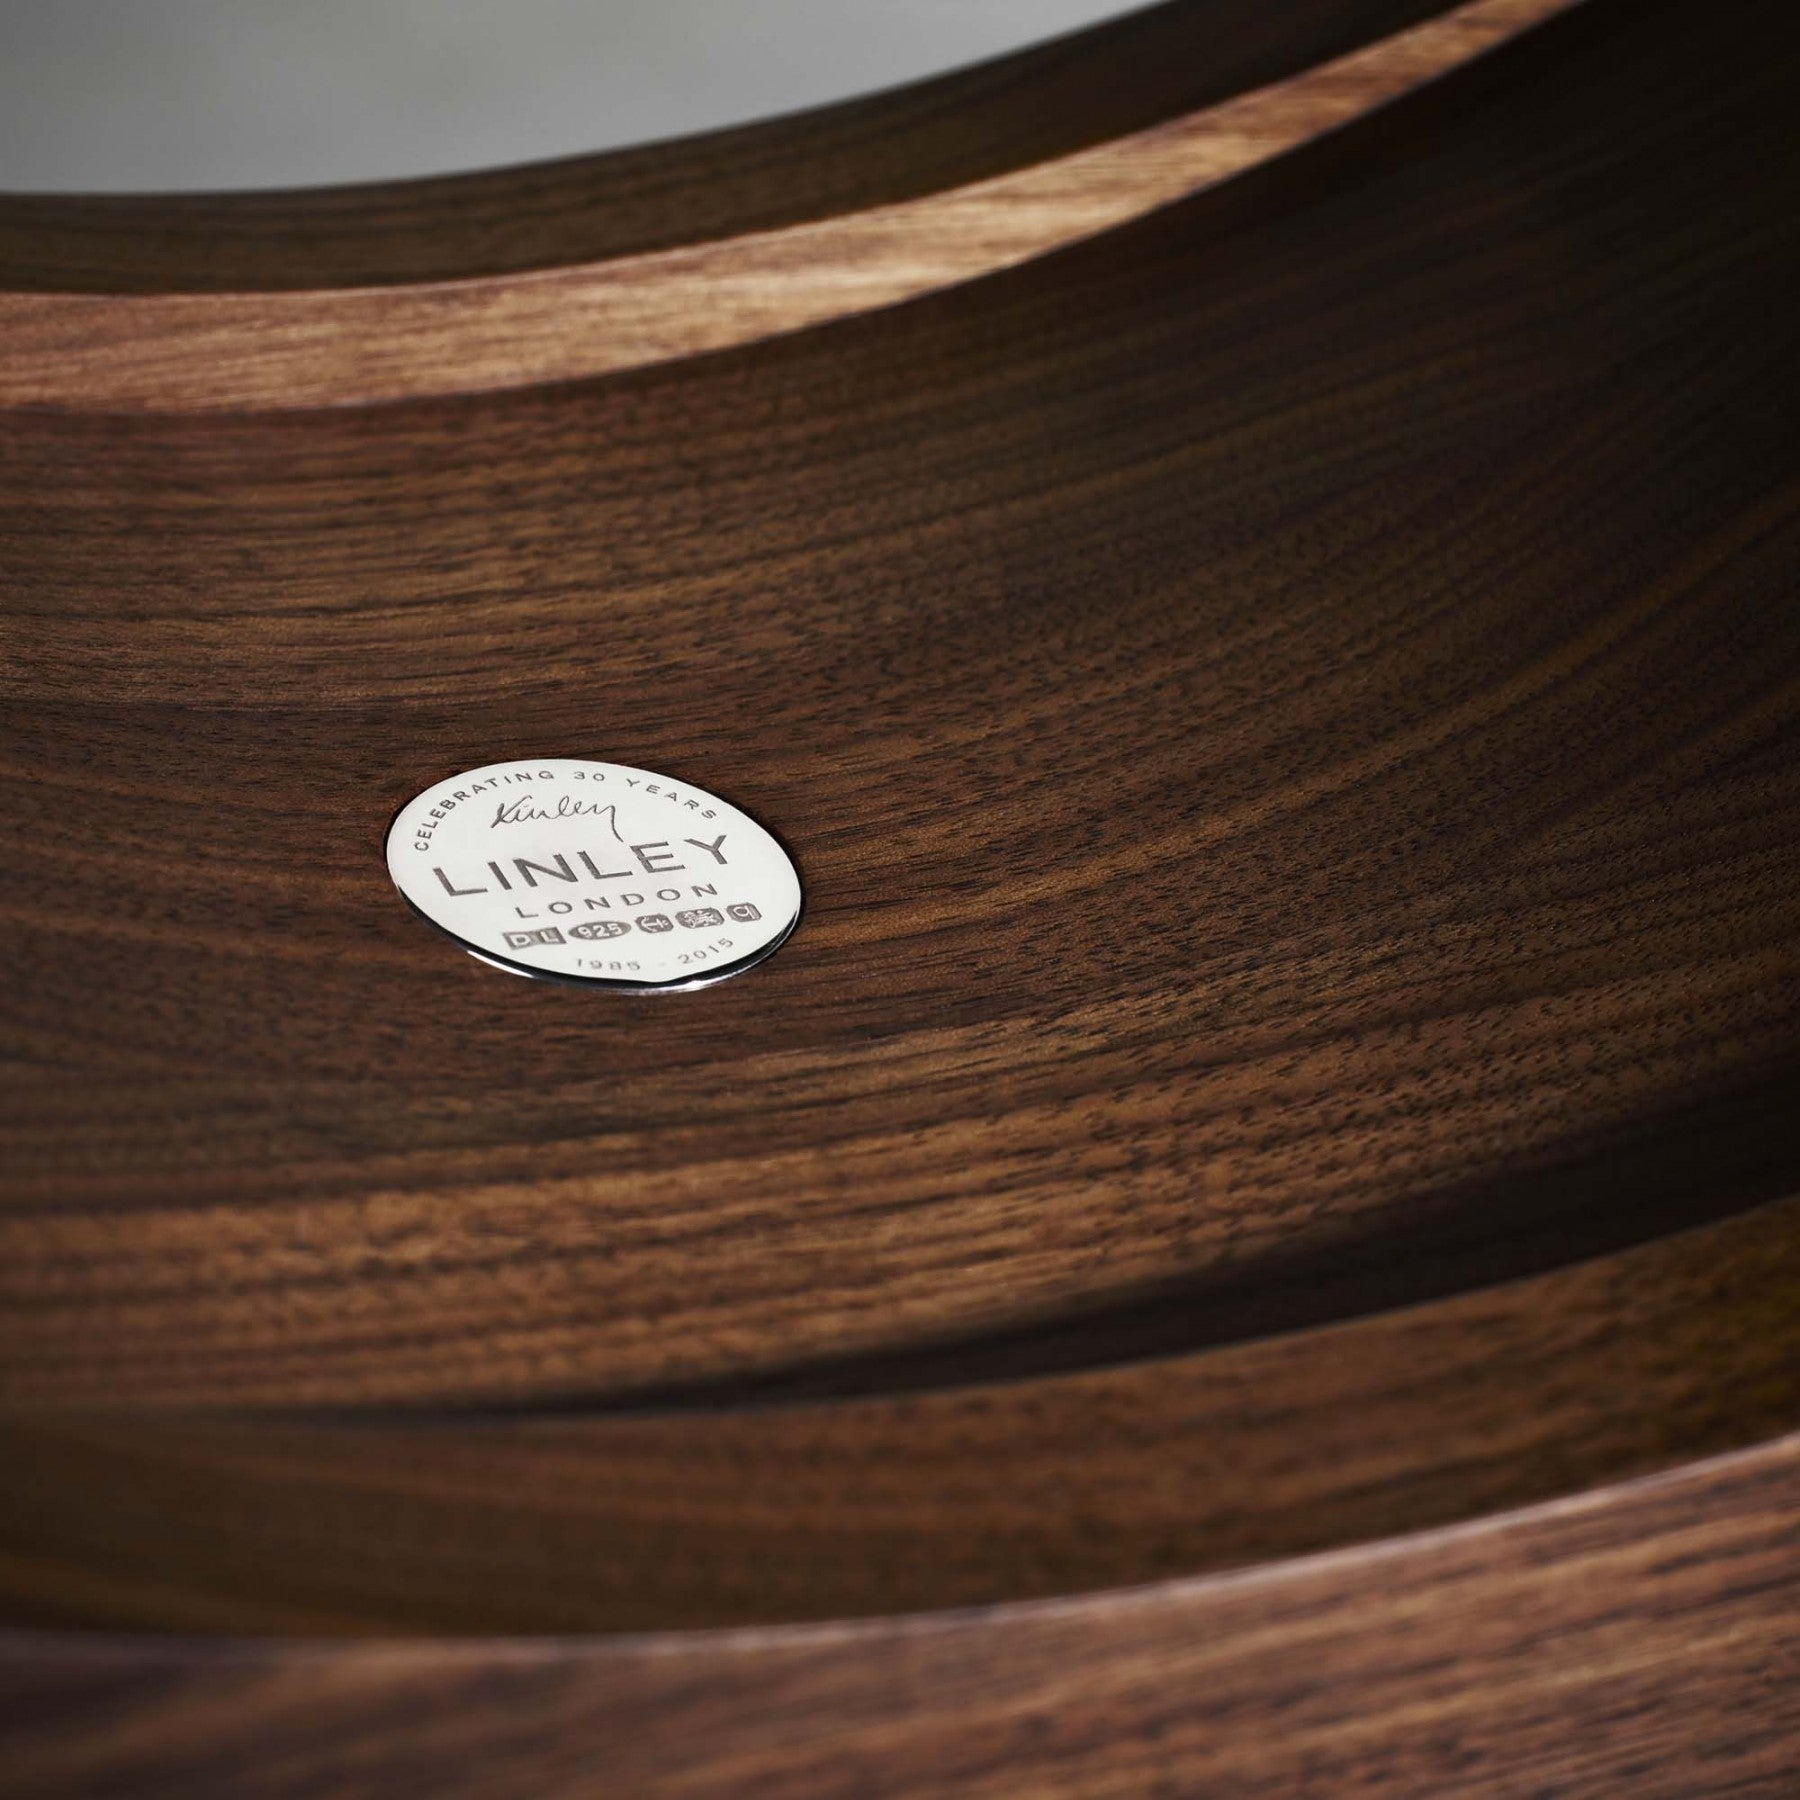 LINLEY London Crescent Fruit Bowl Walnut Wood Detail